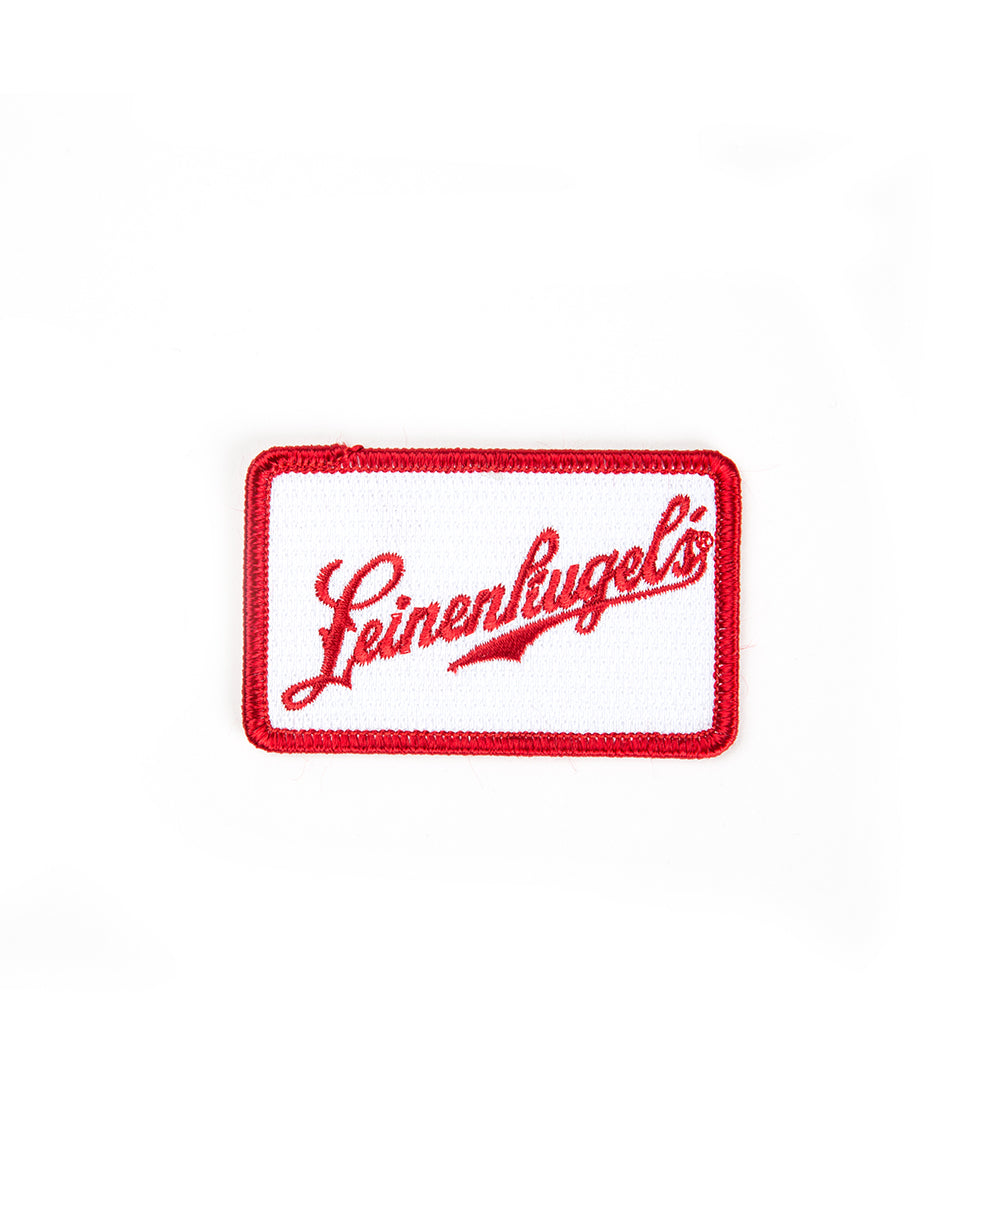 LEINENKUGEL'S PATCH